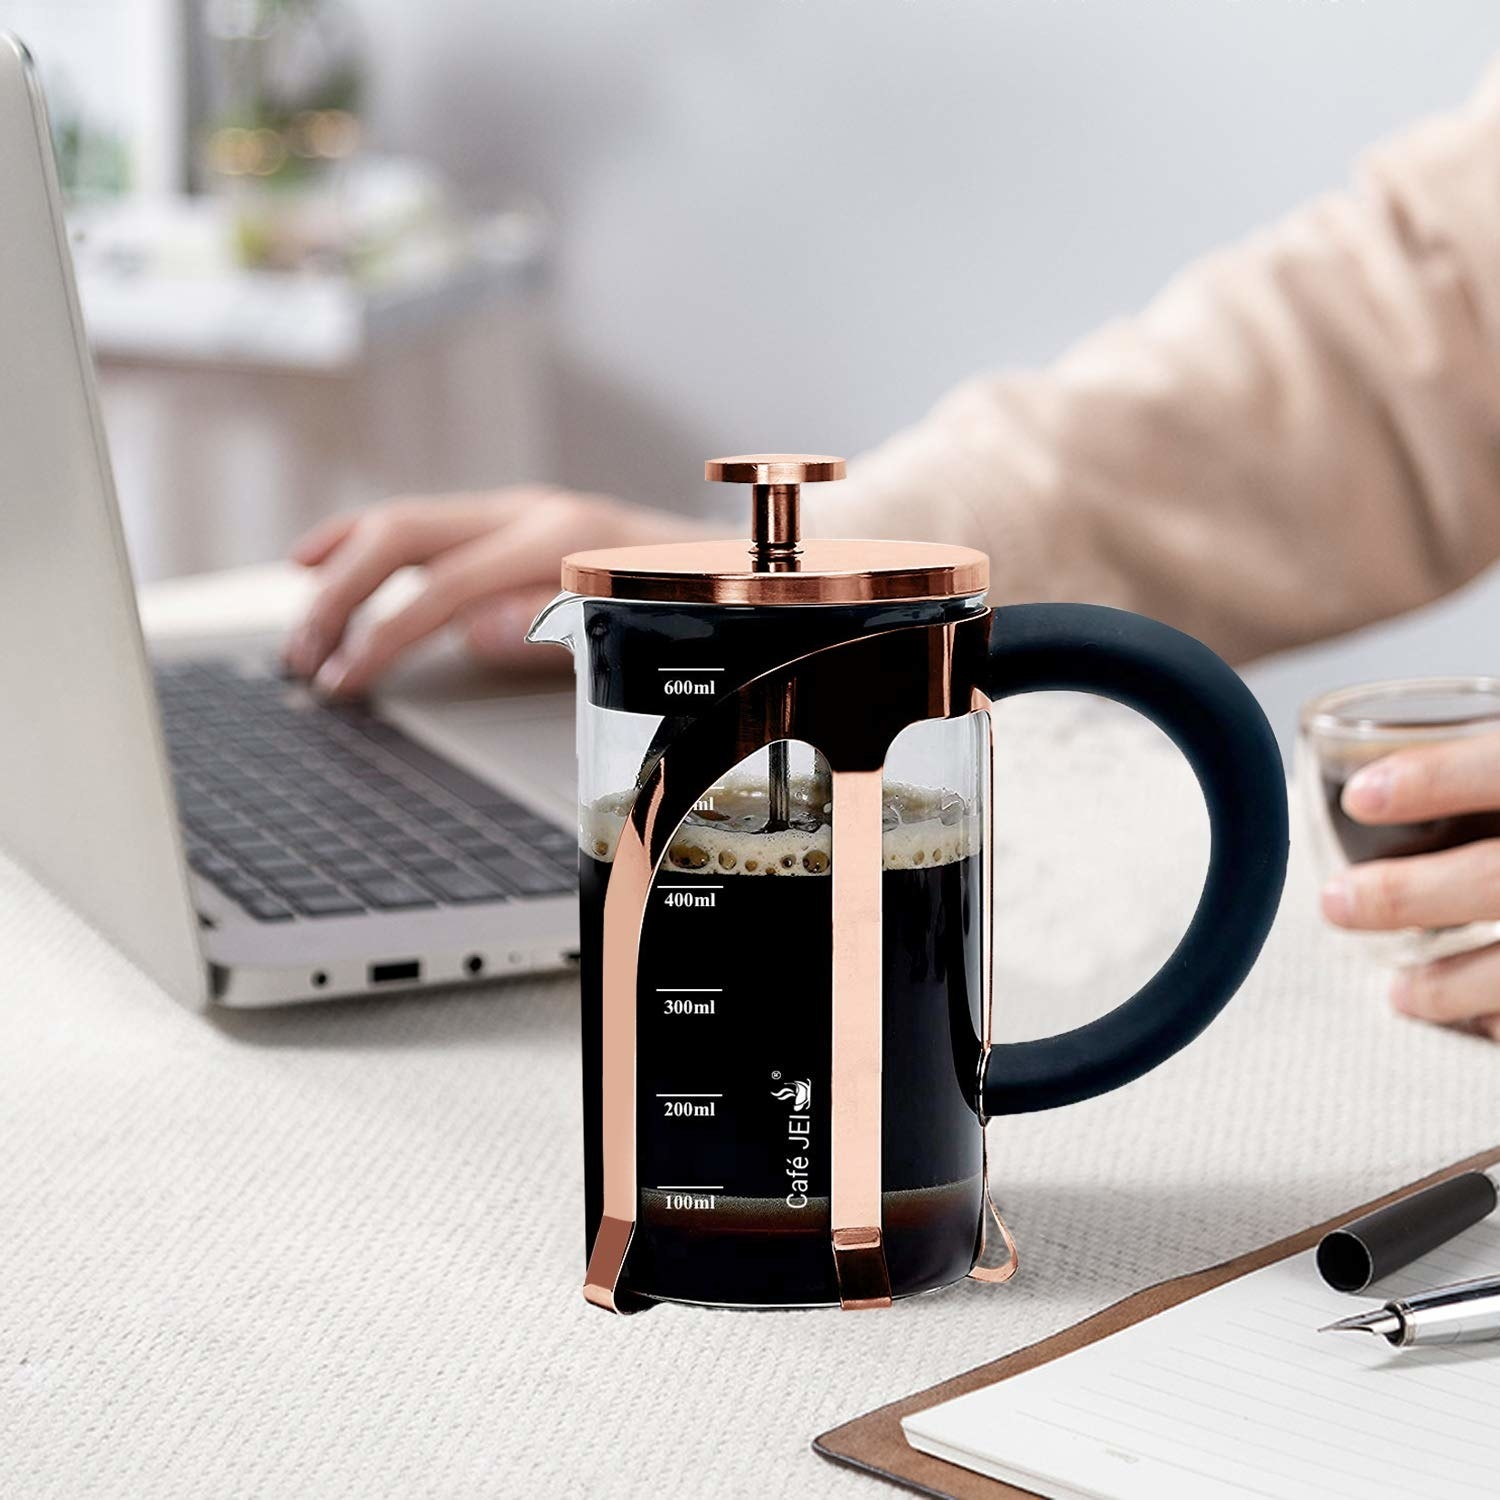 A rose gold french press with coffee, placed on a table with a person working on a laptop in the background.